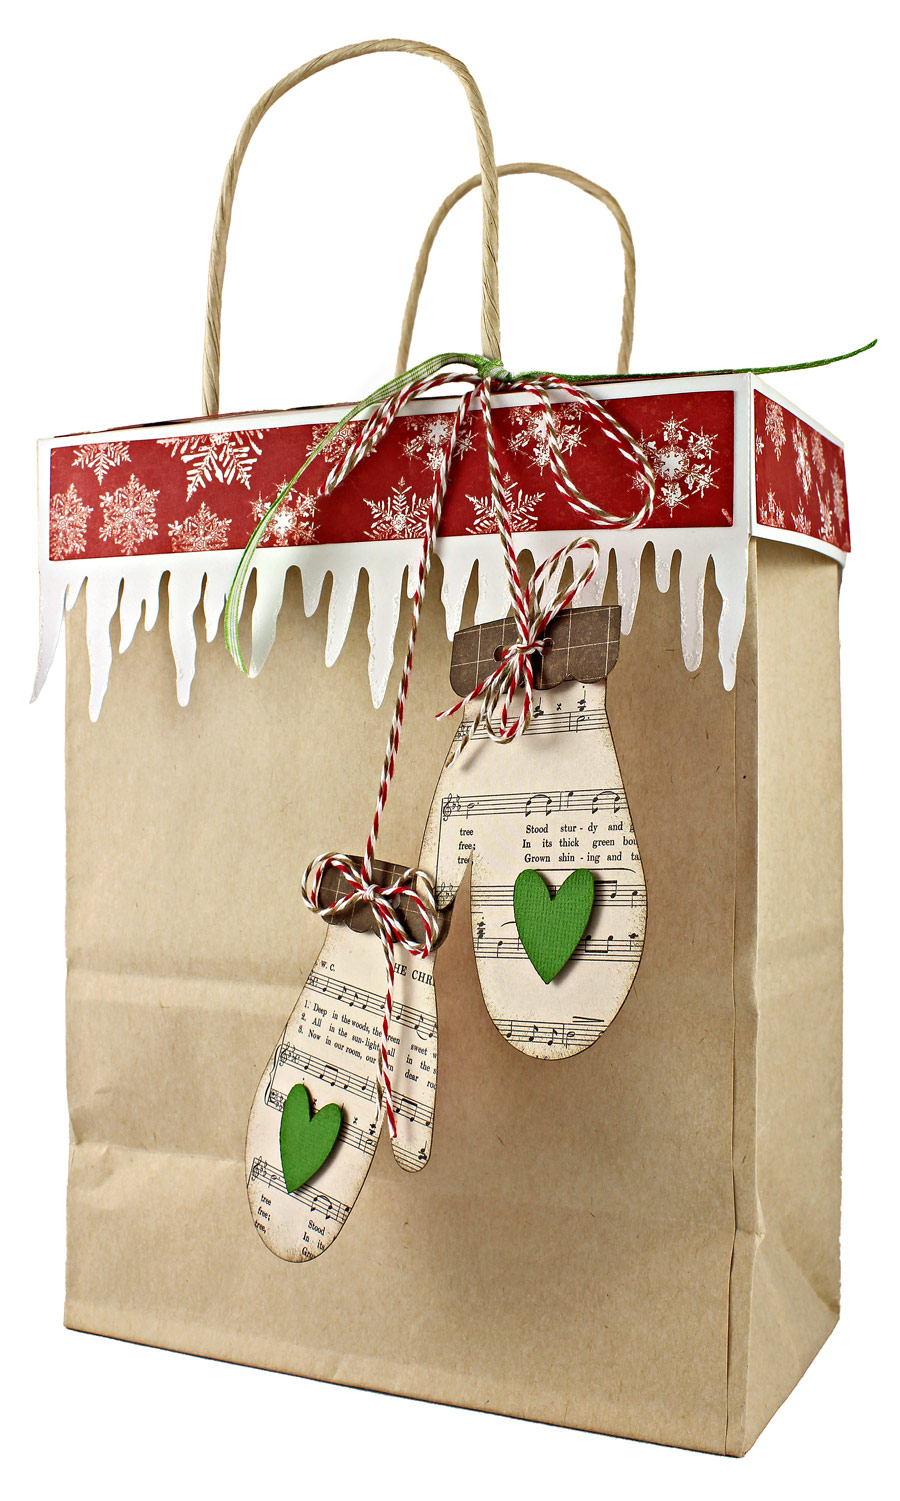 12 gifts of christmas day 3 kraft gift bag topper with mittens